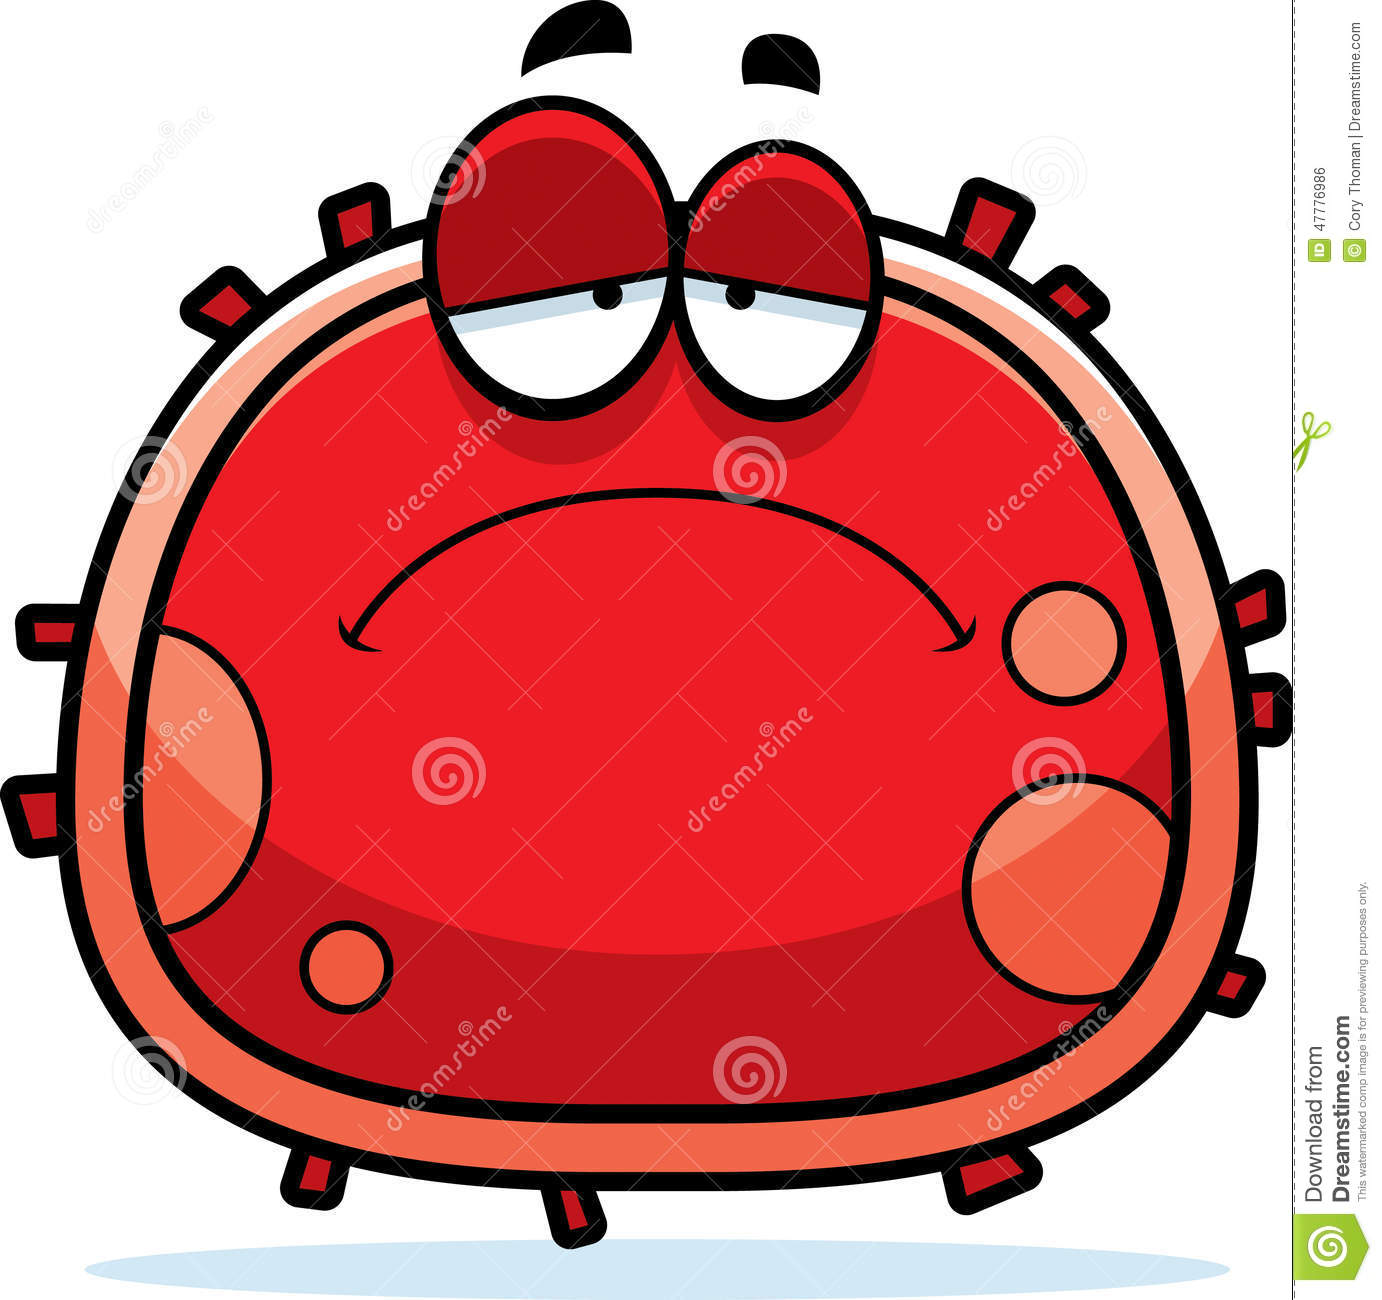 ... illustration of a red blood cell looking sad mr no pr no 0 507 0